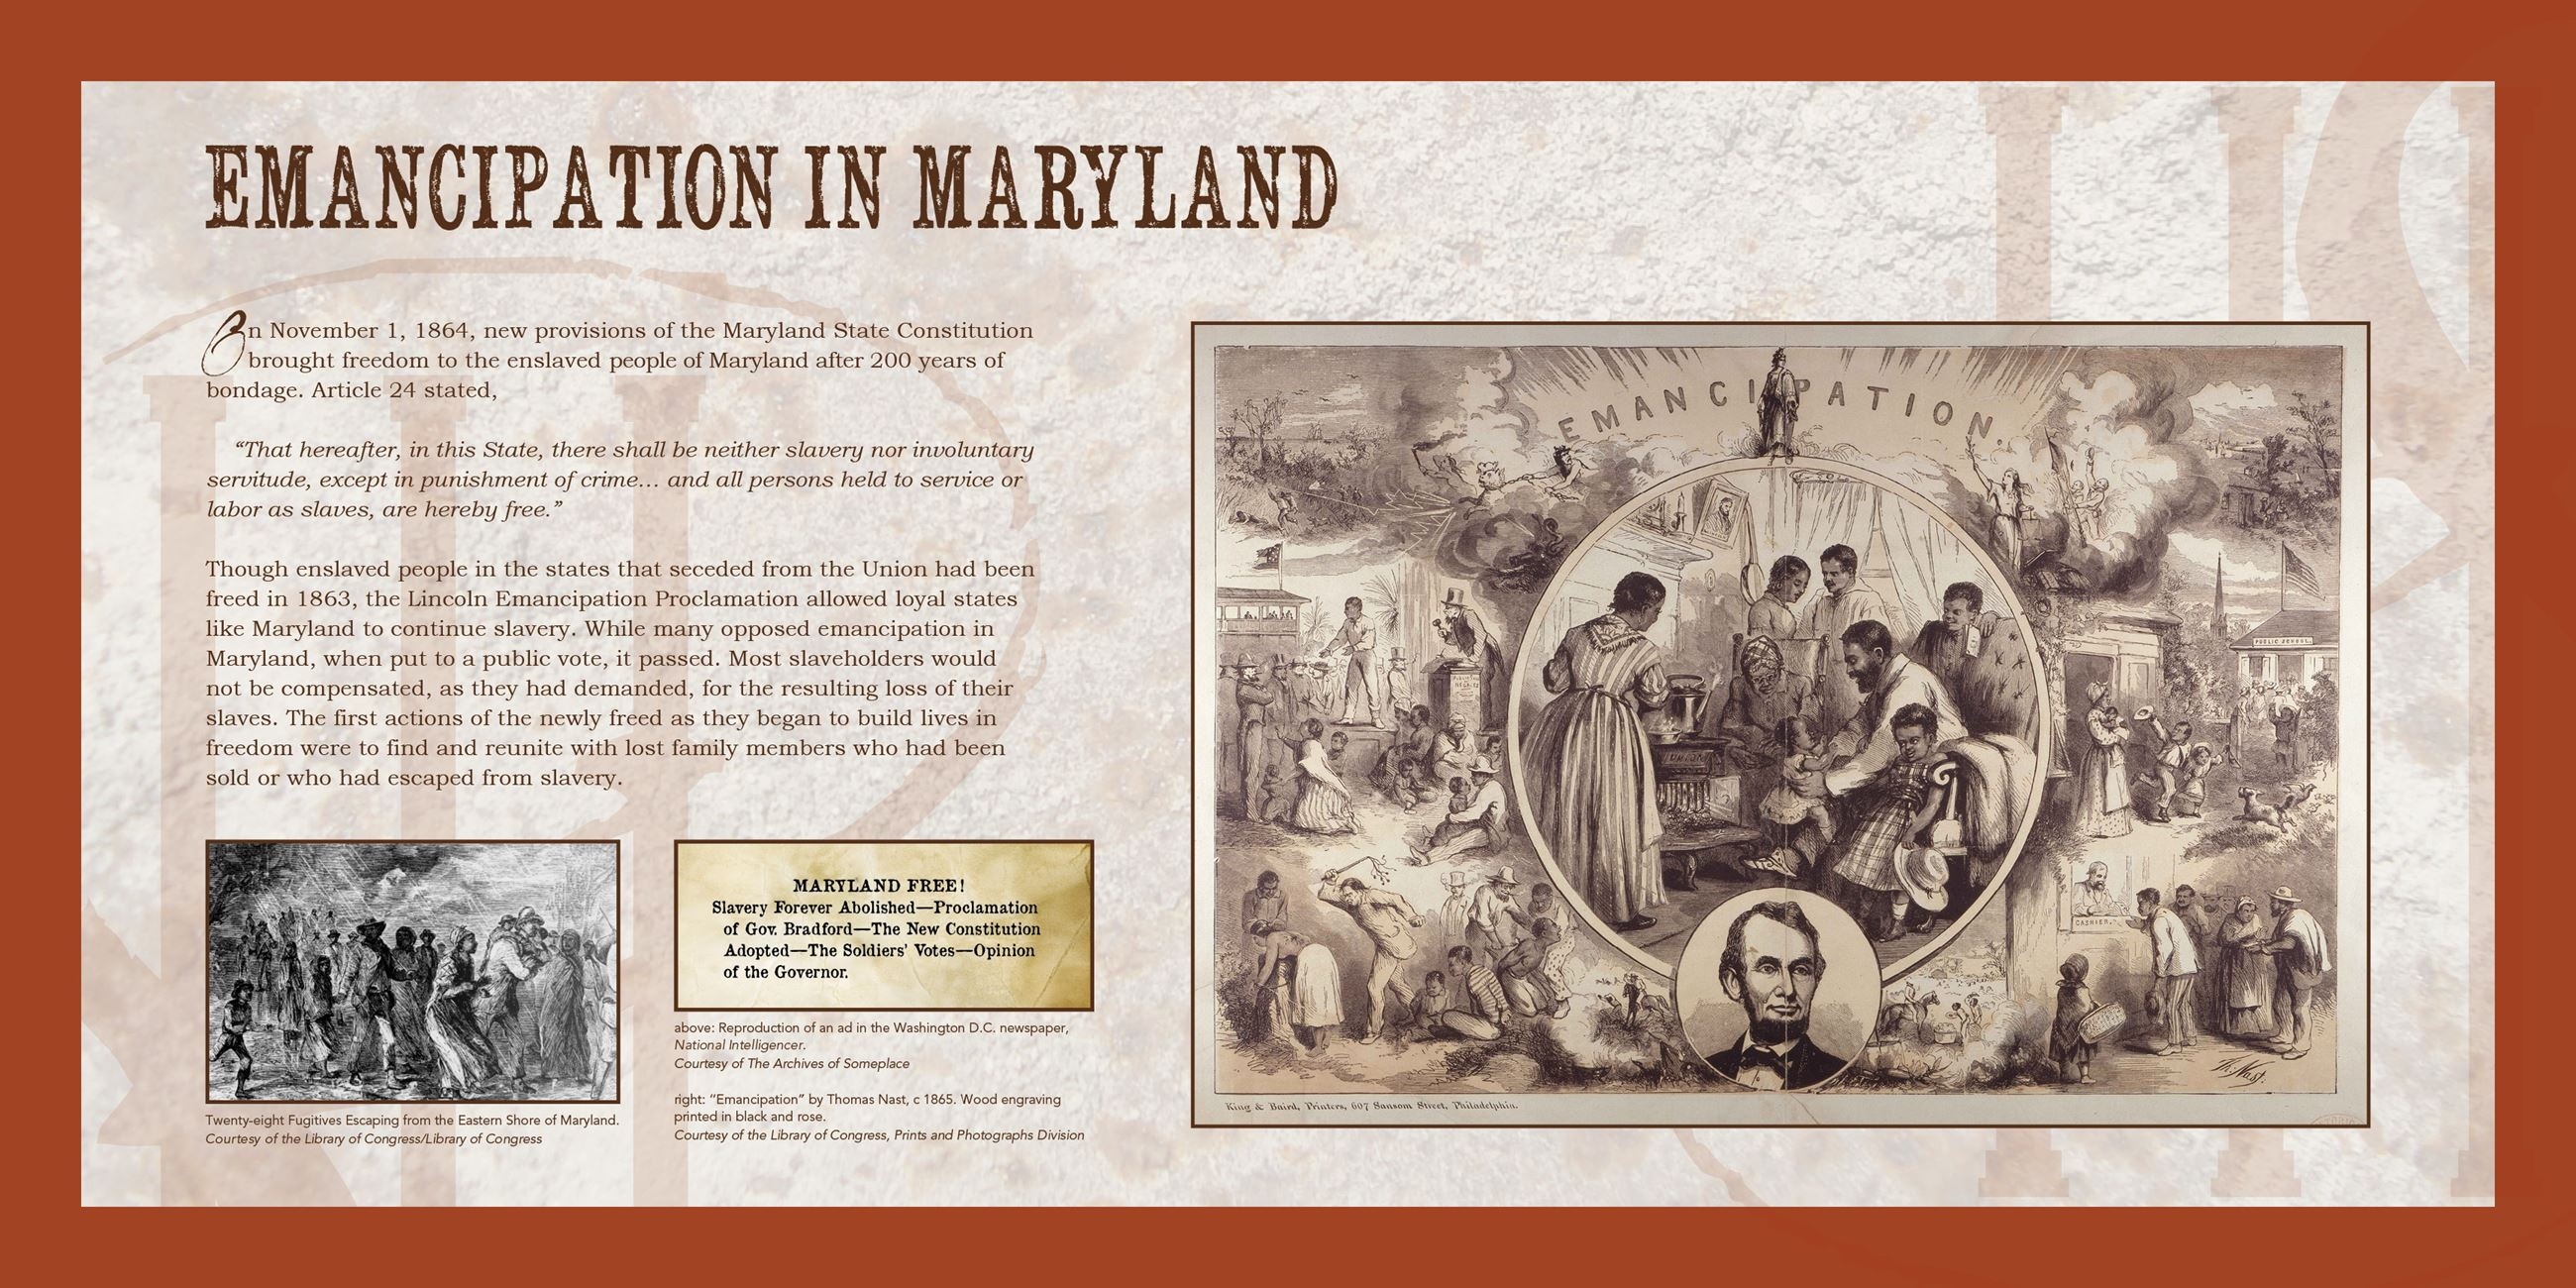 Emancipation in Maryland